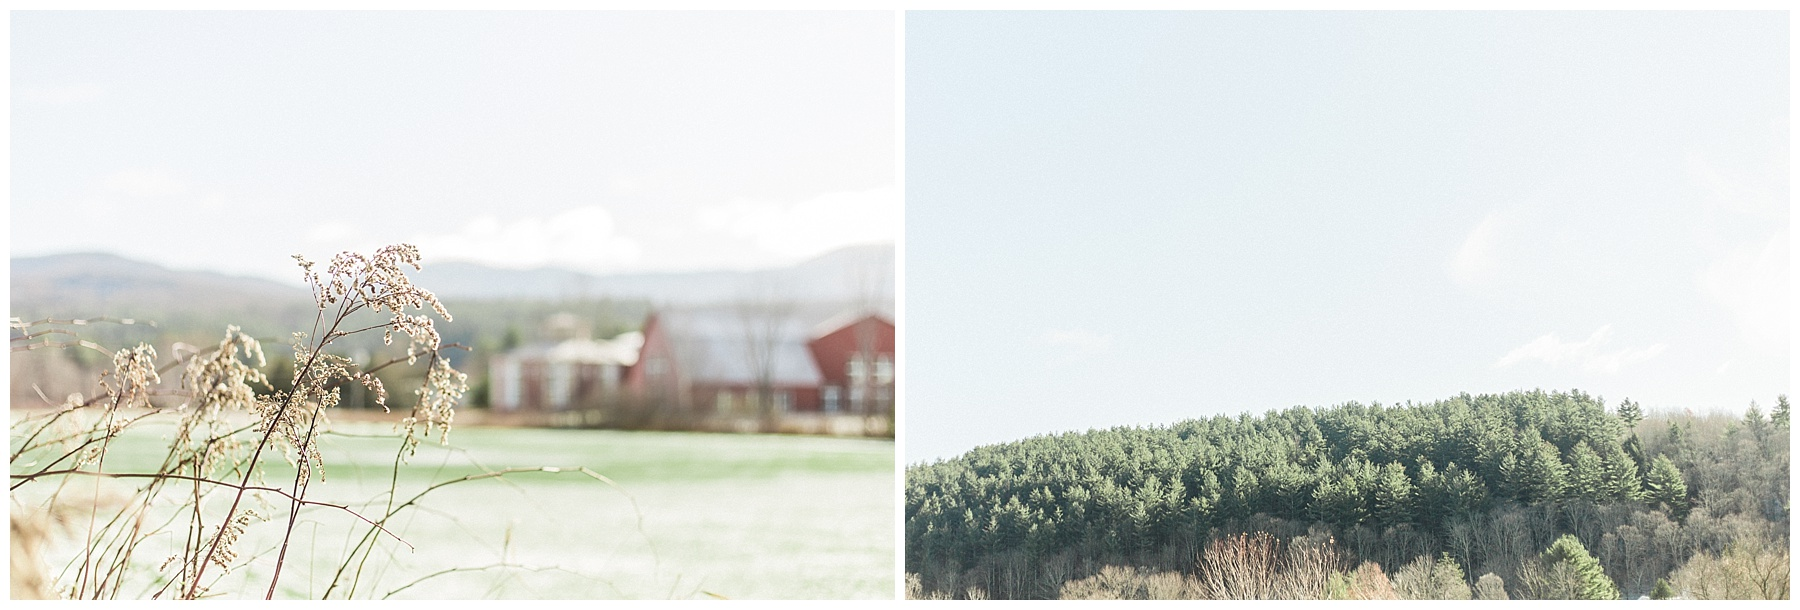 vermont, stowe, engaged, mountains, wanderlove, discoverwanderlove, beauty, proposal, proposal story, ben and jerrys, icecream, rec path